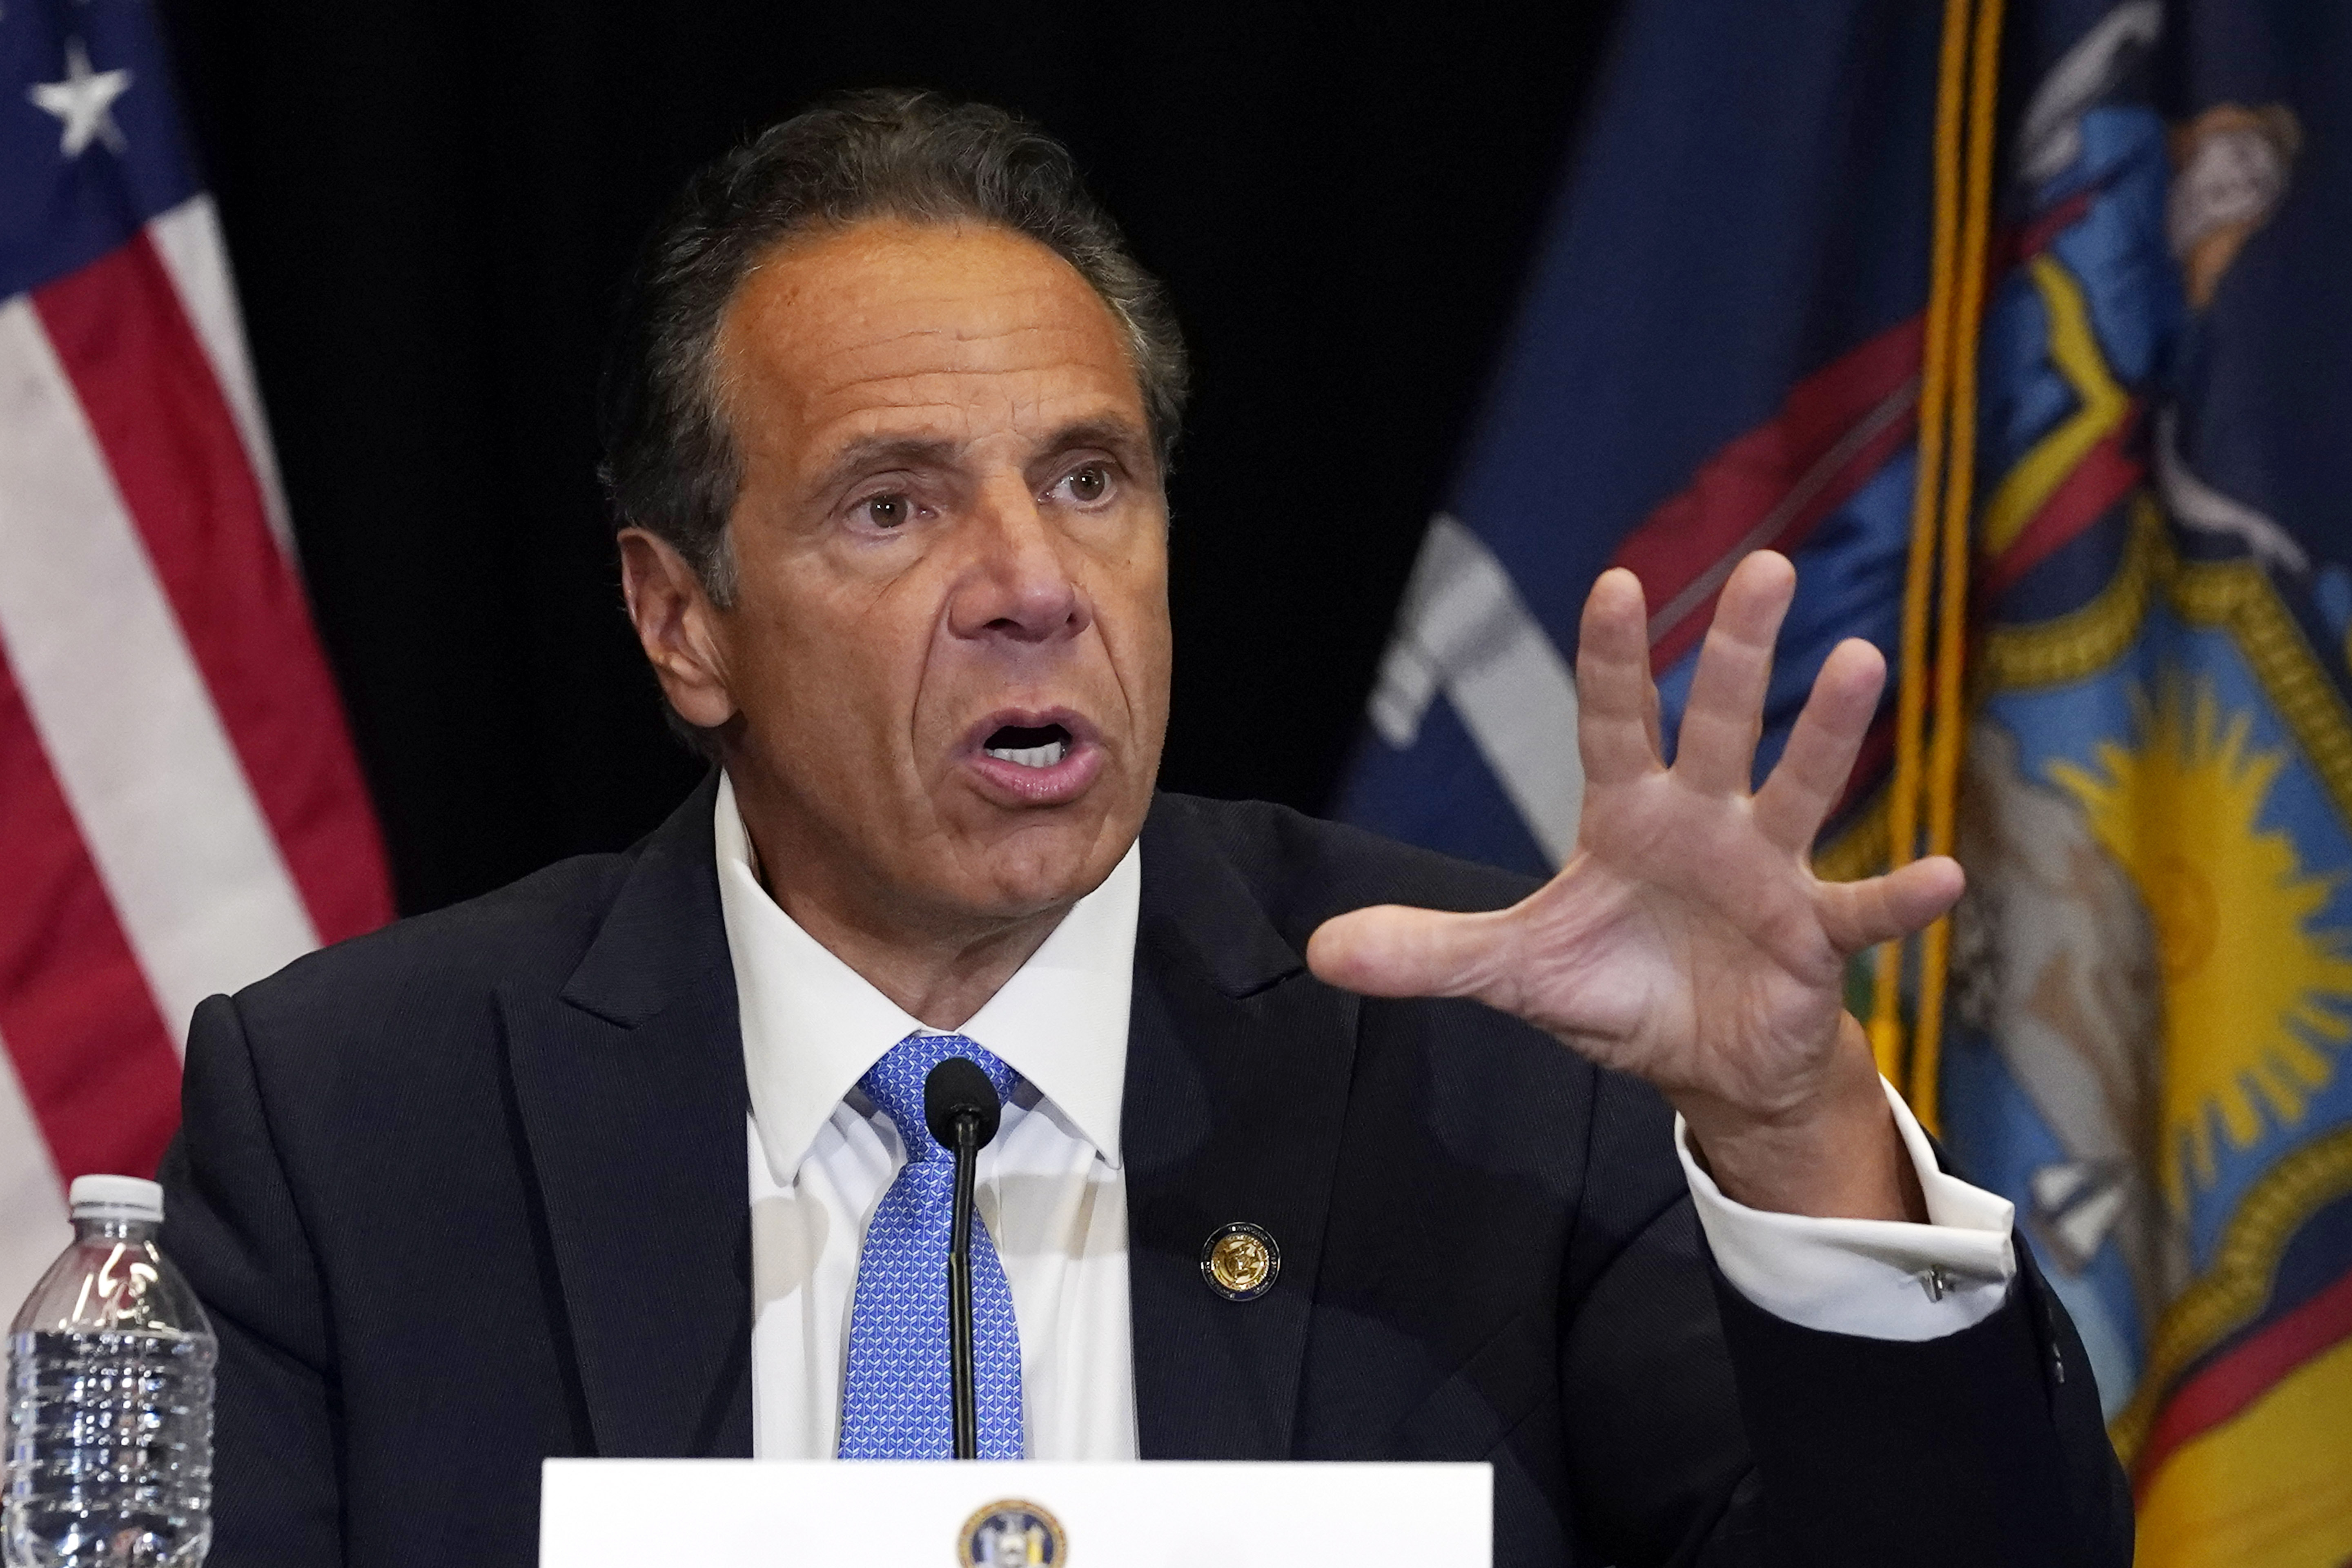 New York Gov. Andrew Cuomo speaks during a news conference at New York's Yankee Stadium, Monday, July 26, 2021. An investigation into New York Gov. Andrew Cuomo has found that he sexually assaulted multiple current and former state government employees. State Attorney General Letitia James announced the findings Tuesday.